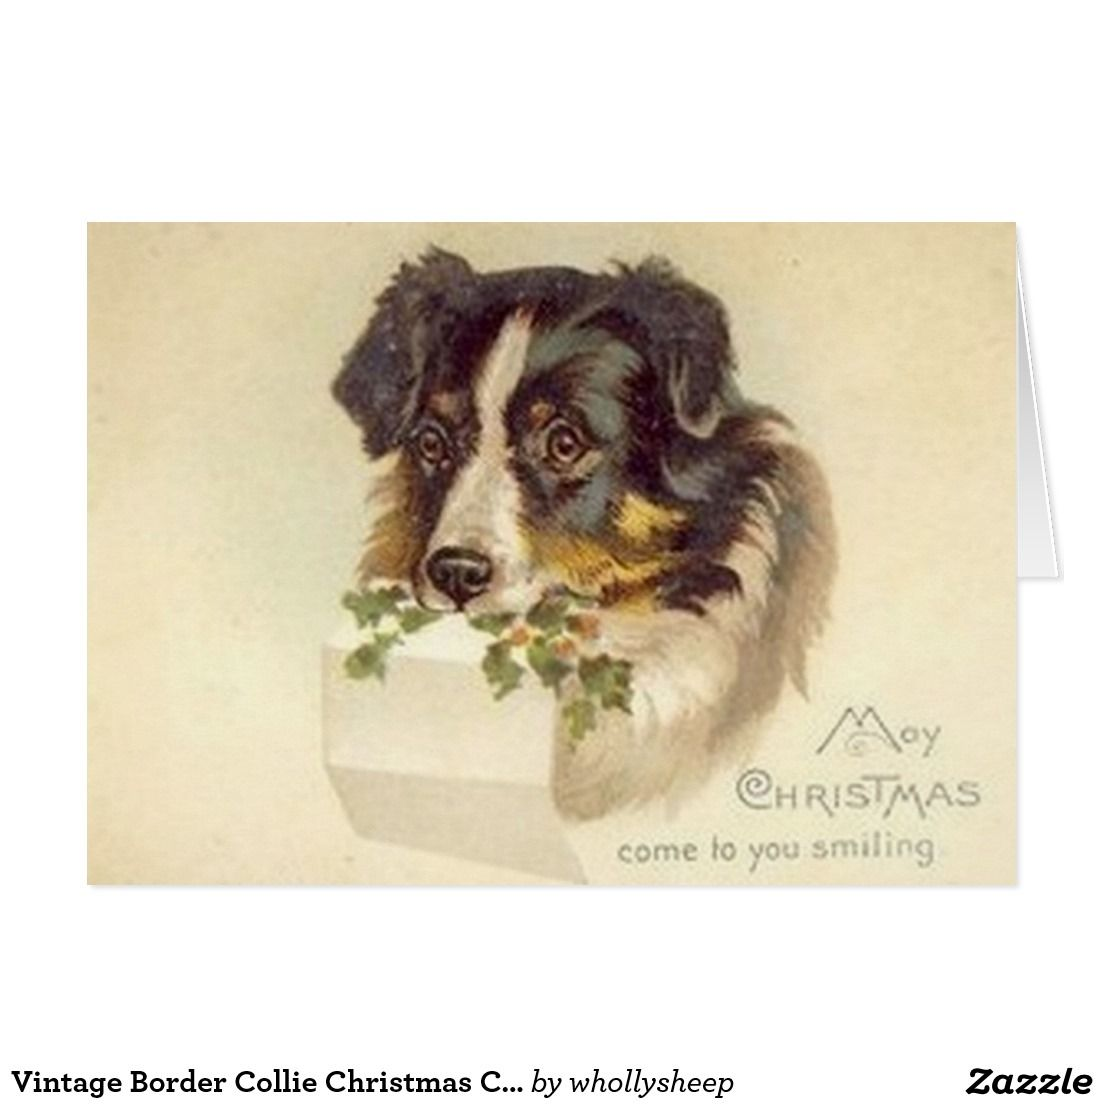 Vintage Border Collie Christmas Card | Pinterest | Collie, Vintage ...